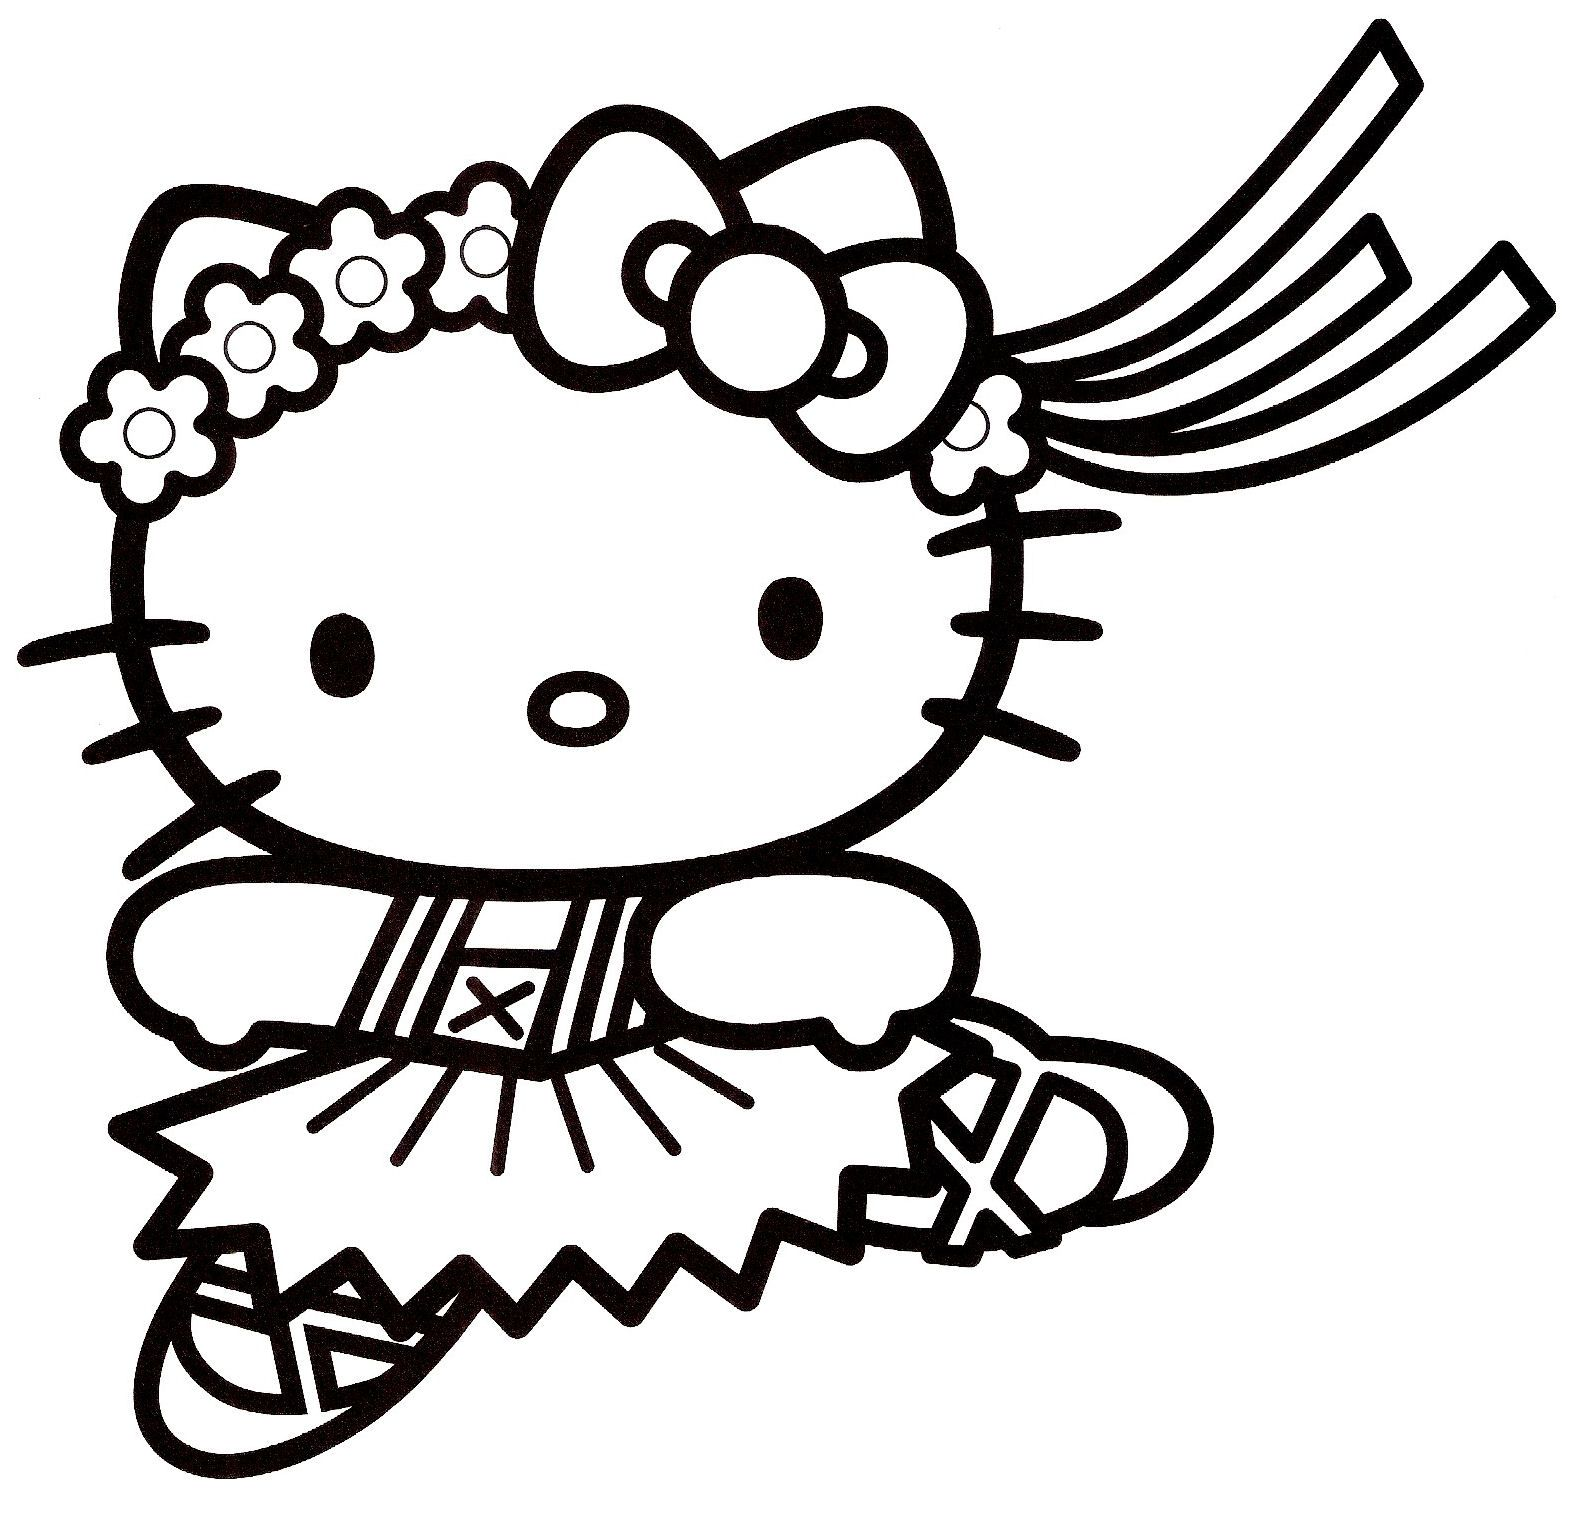 Coloriage hello kitty colorier dessin imprimer taylor pinterest hello kitty kitty - Coloriage hello kitty jeux ...